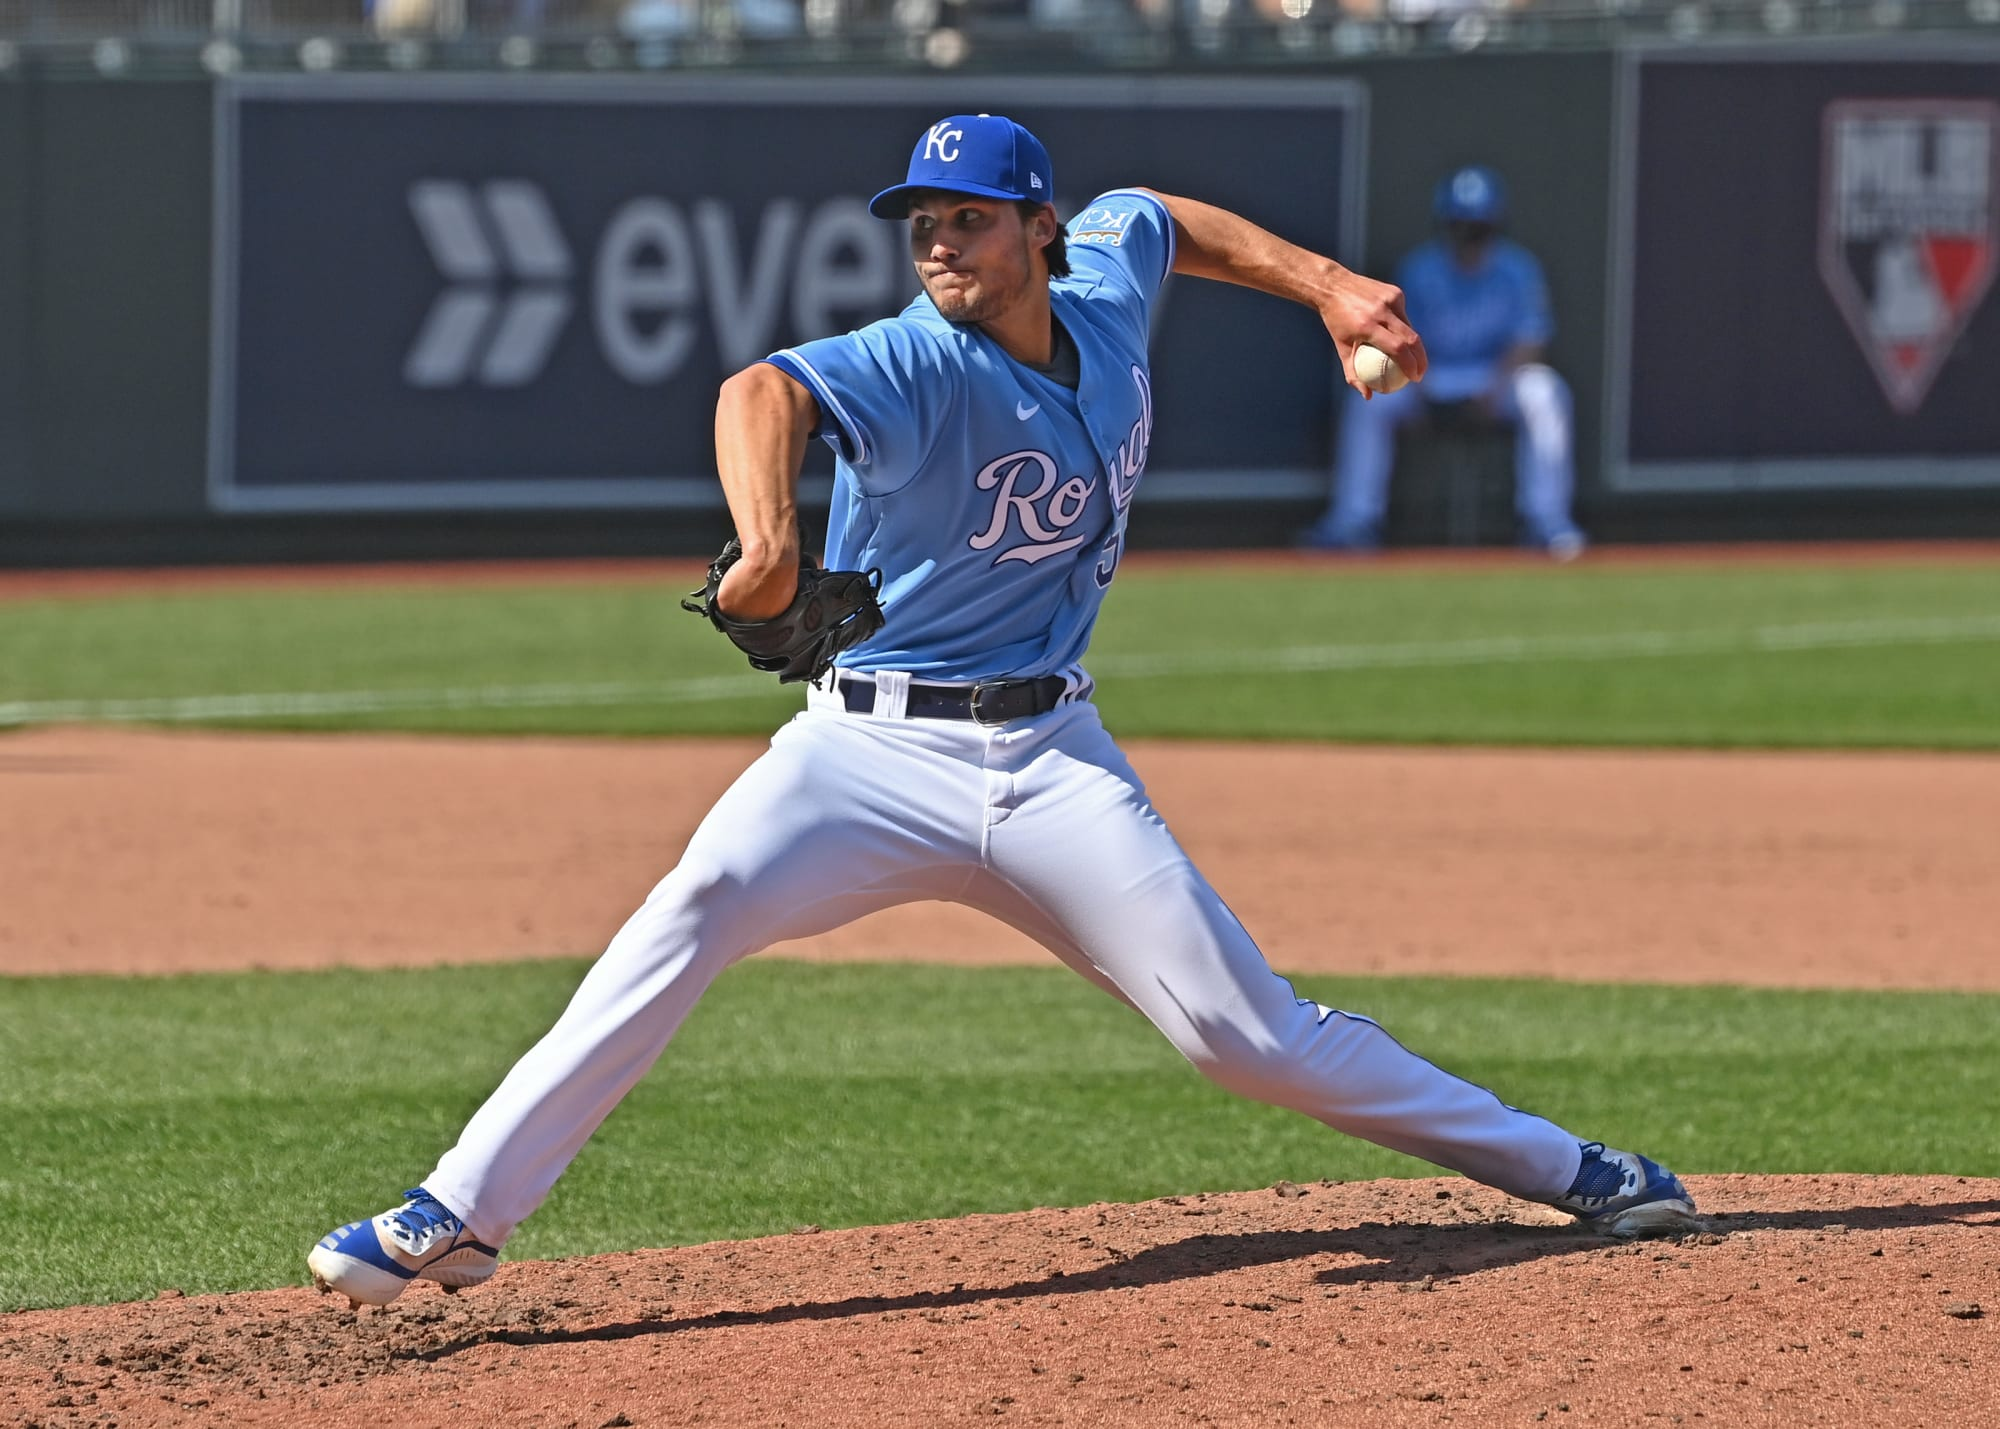 KC Royals reliever Jake Brentz is leaving an early impression